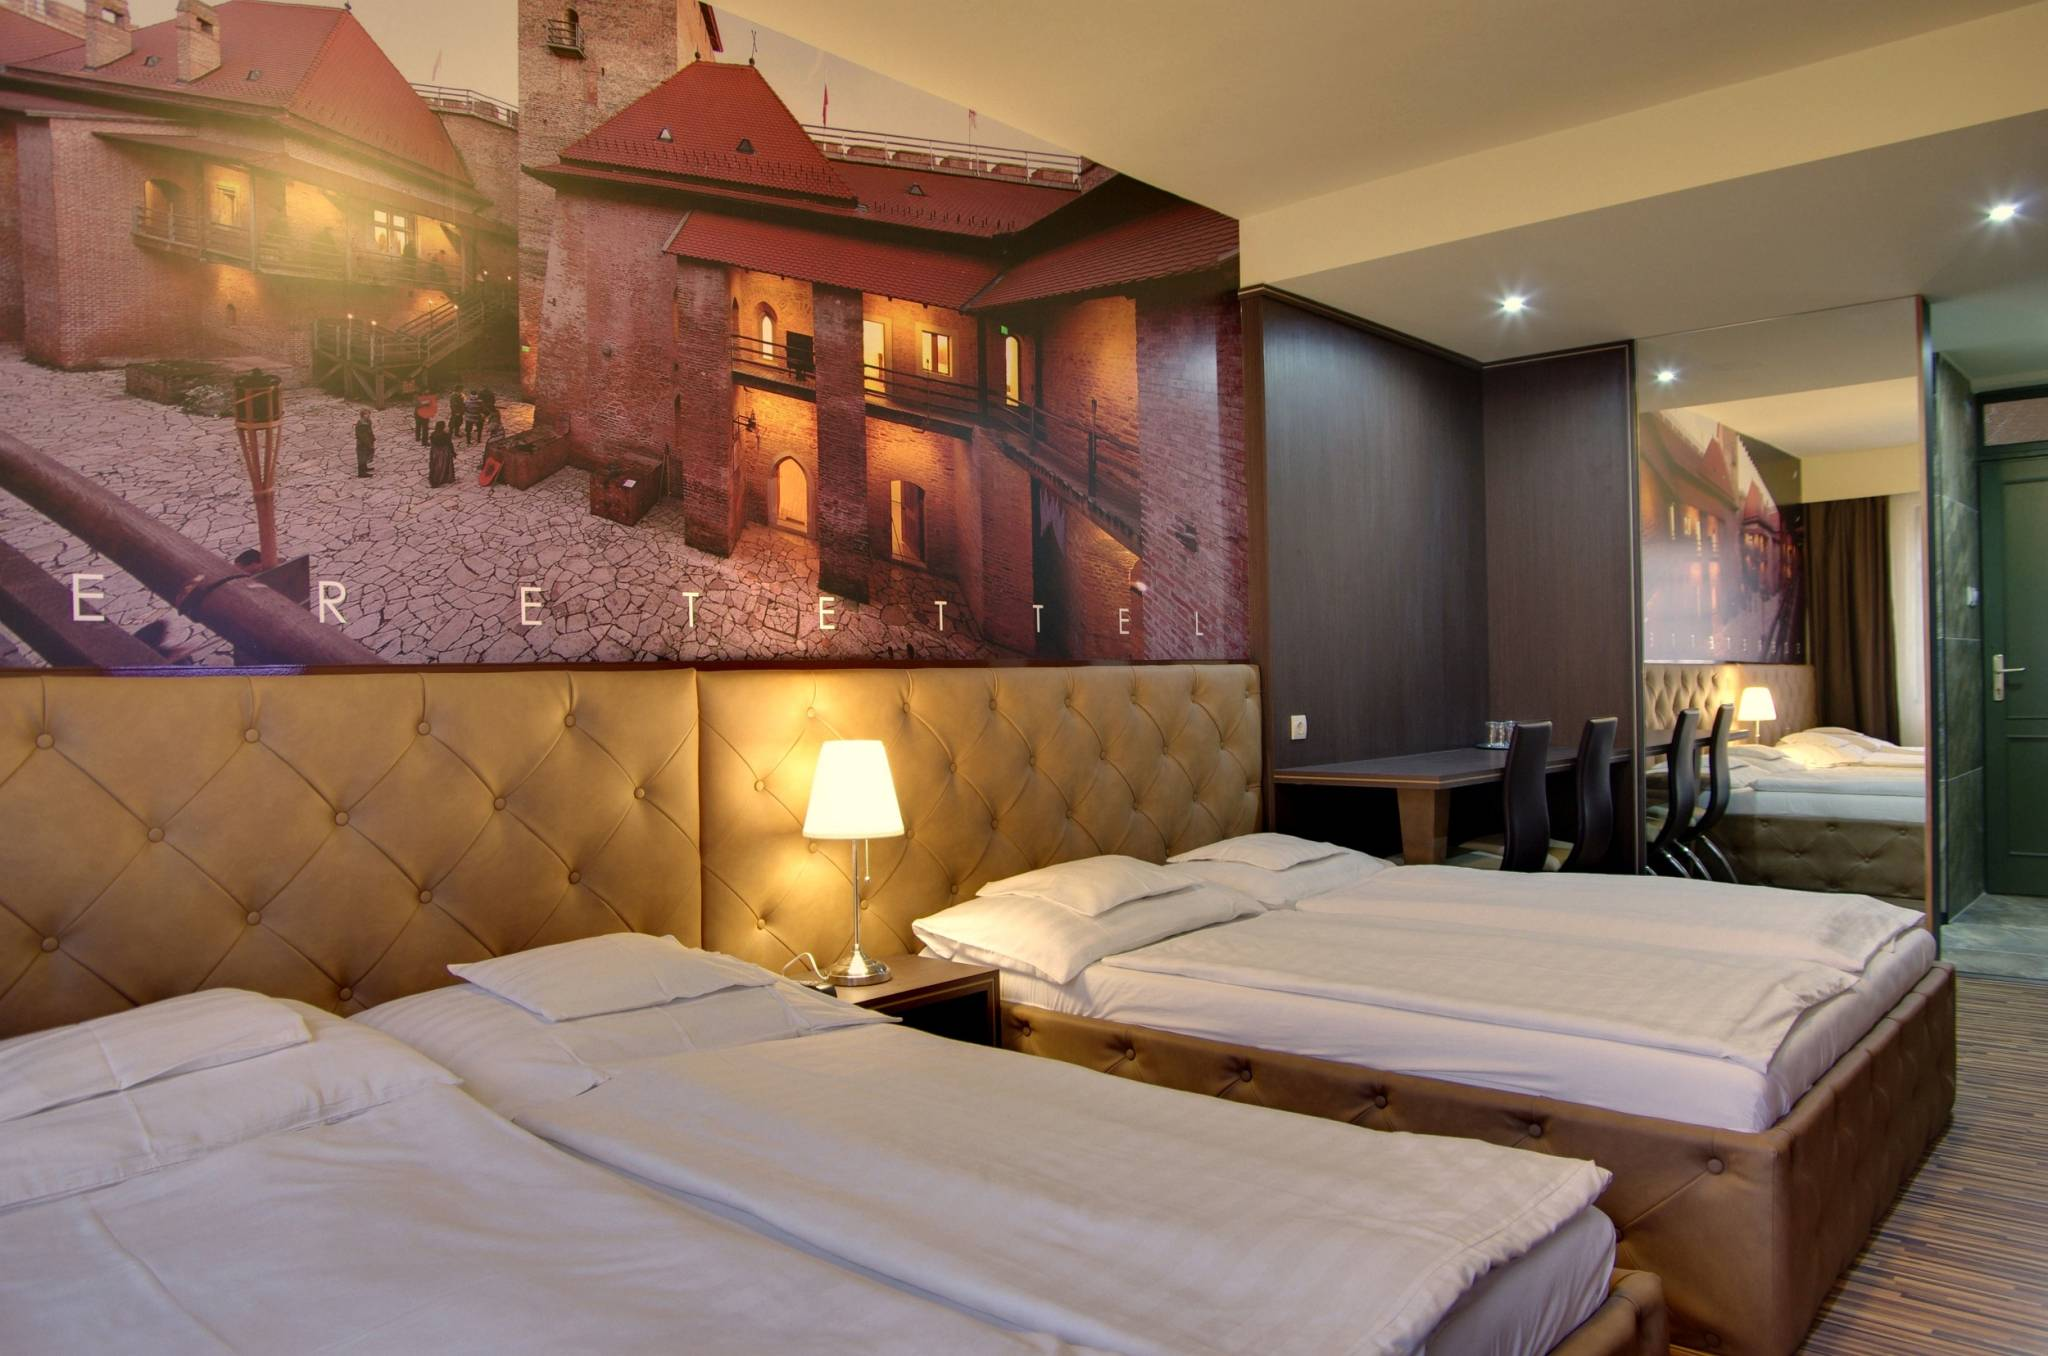   Corvin Hotel Gyula 1152647